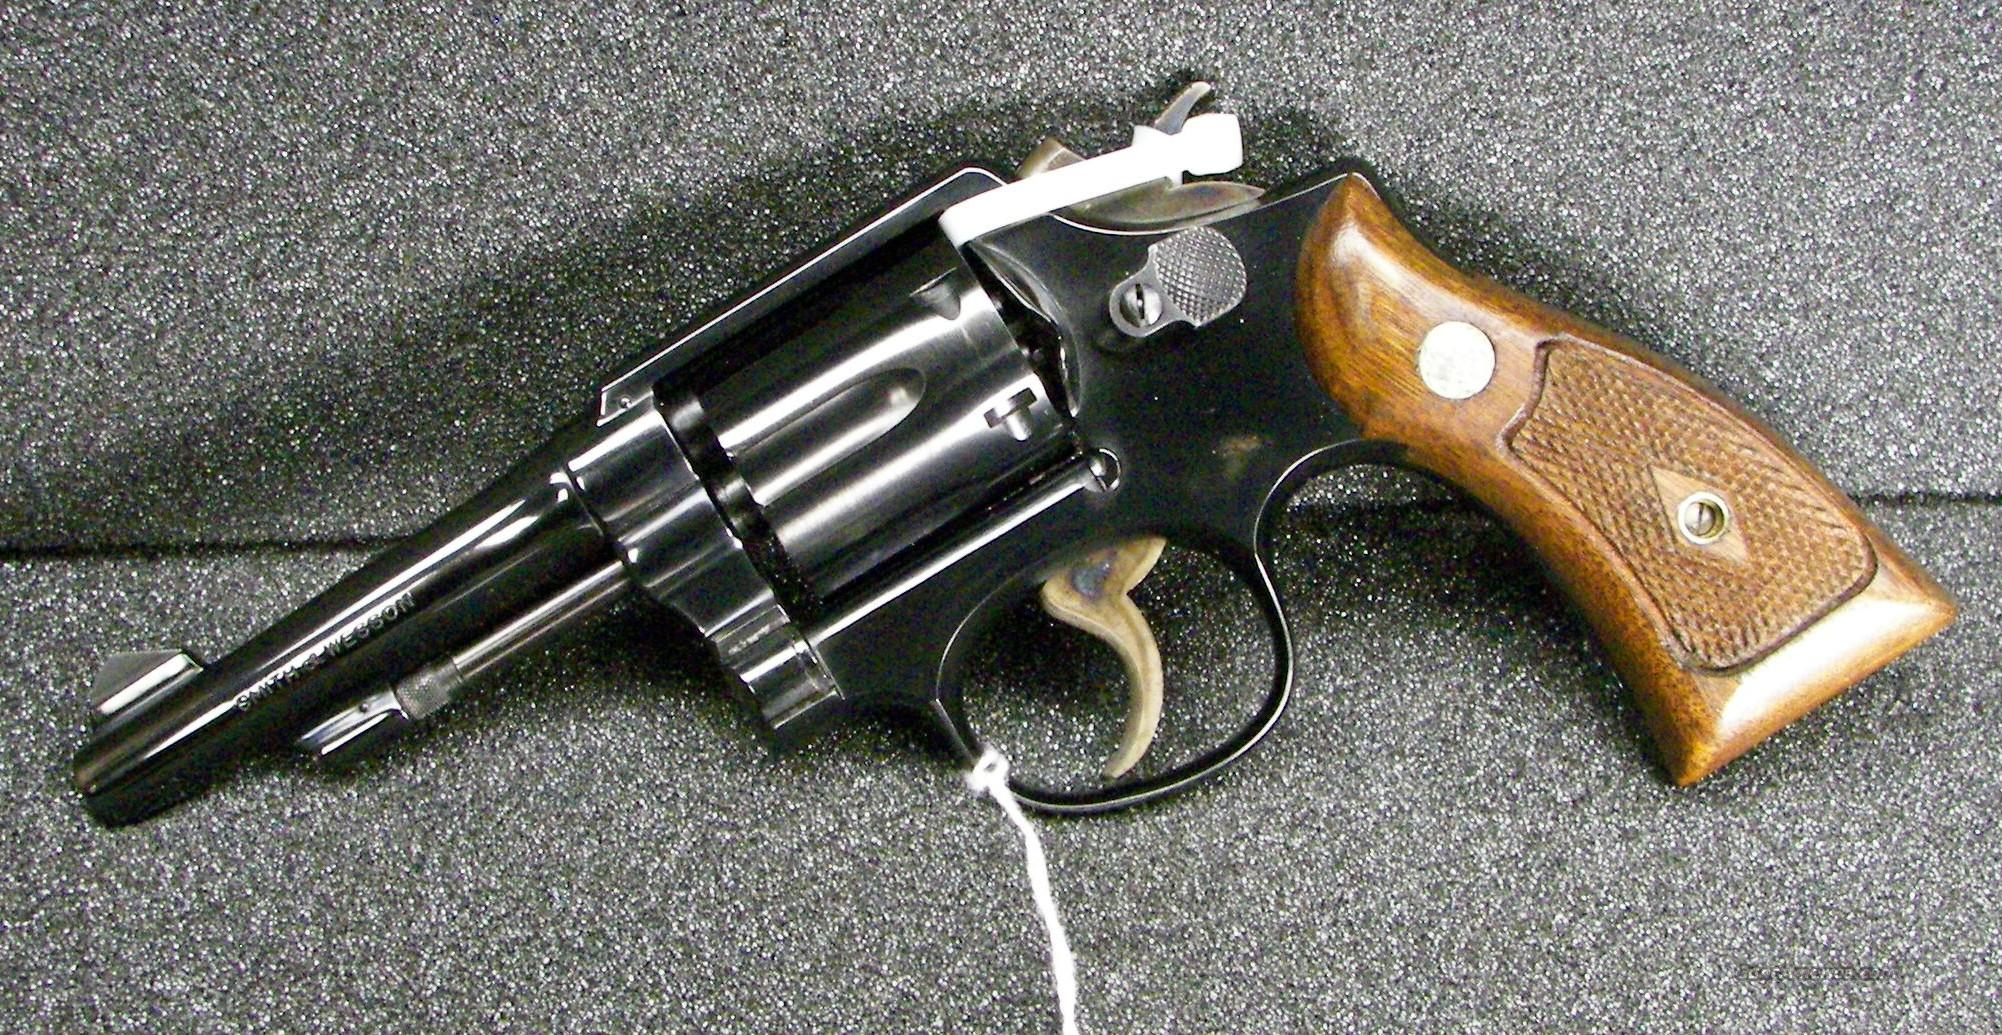 SMITH & WESSON MODEL 10 38 SPECIAL  Guns > Pistols > Smith & Wesson Revolvers > Full Frame Revolver